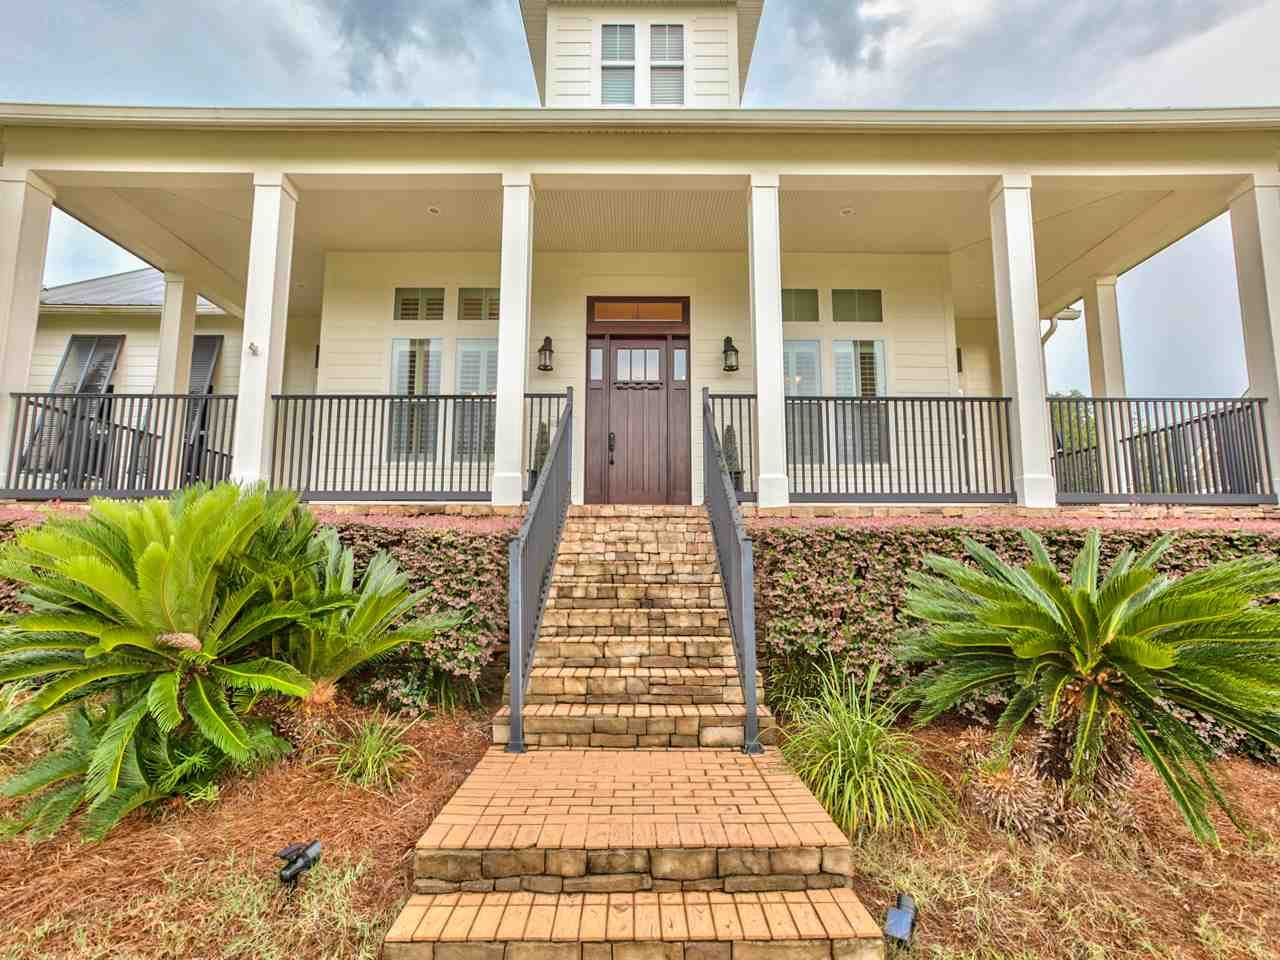 Photo of 3056 Dickinson Drive, TALLAHASSEE, FL 32311 (MLS # 322458)